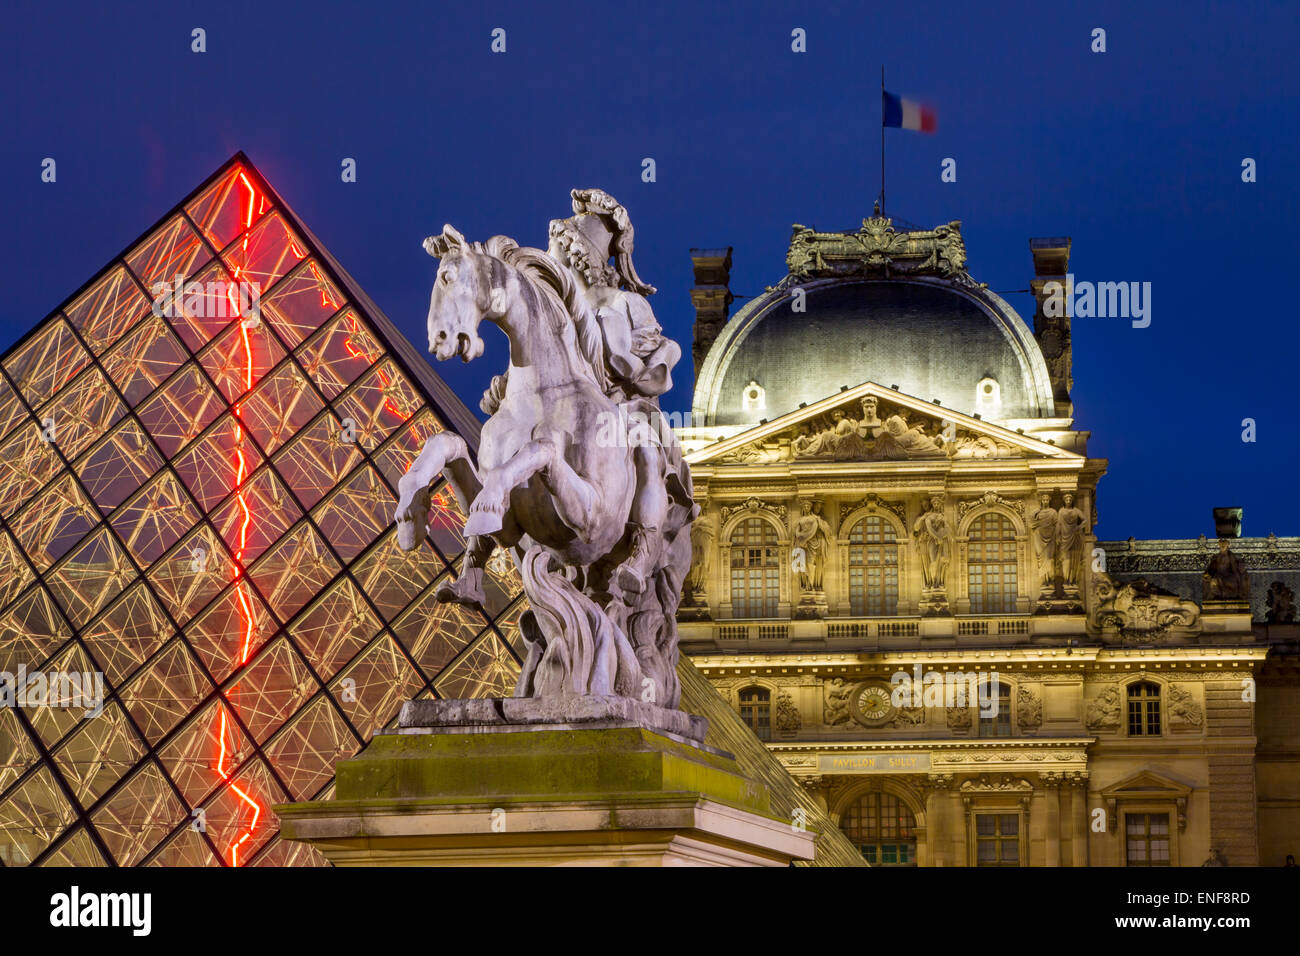 Twilight over Louis XIV Statue, the glass pyramid and Musee du Louvre, Paris, France - Stock Image